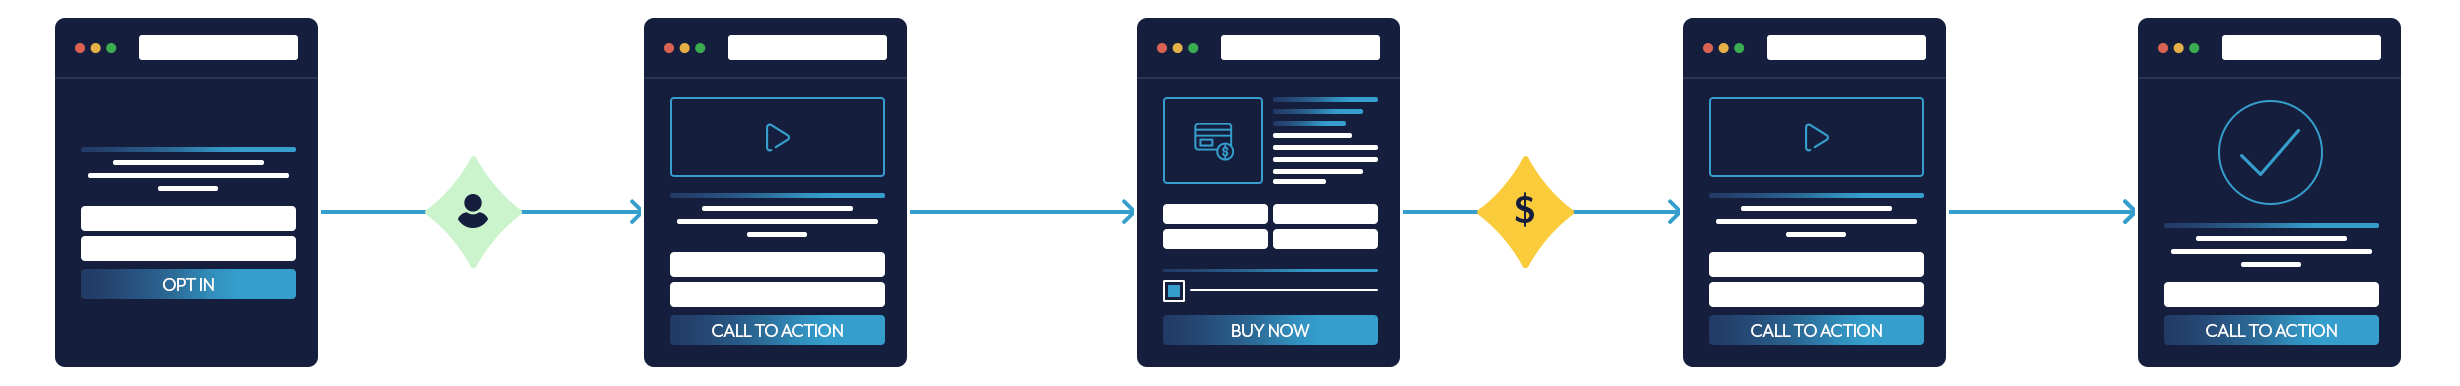 What Is An Automated Sales Engine And How Does It Add Jet Fuel To Every Ad Dollar?